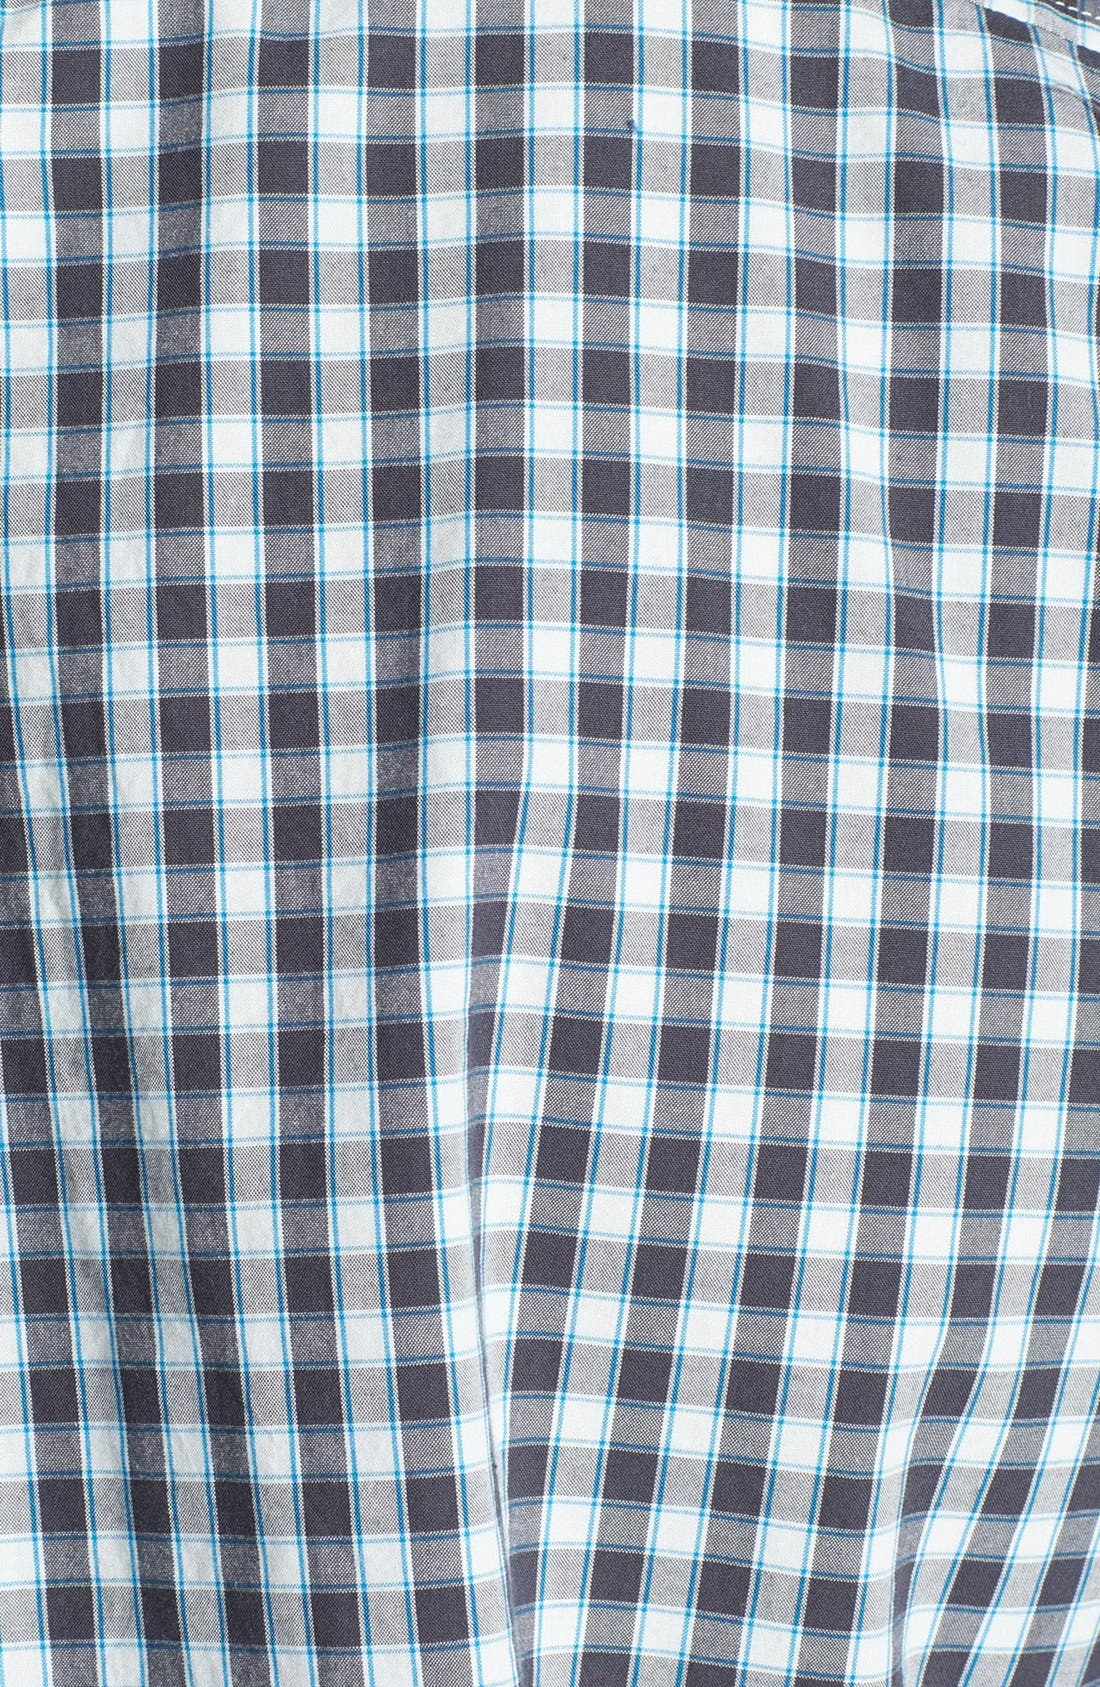 Alternate Image 3  - Jack Spade 'Cameron' Gingham Check Woven Shirt